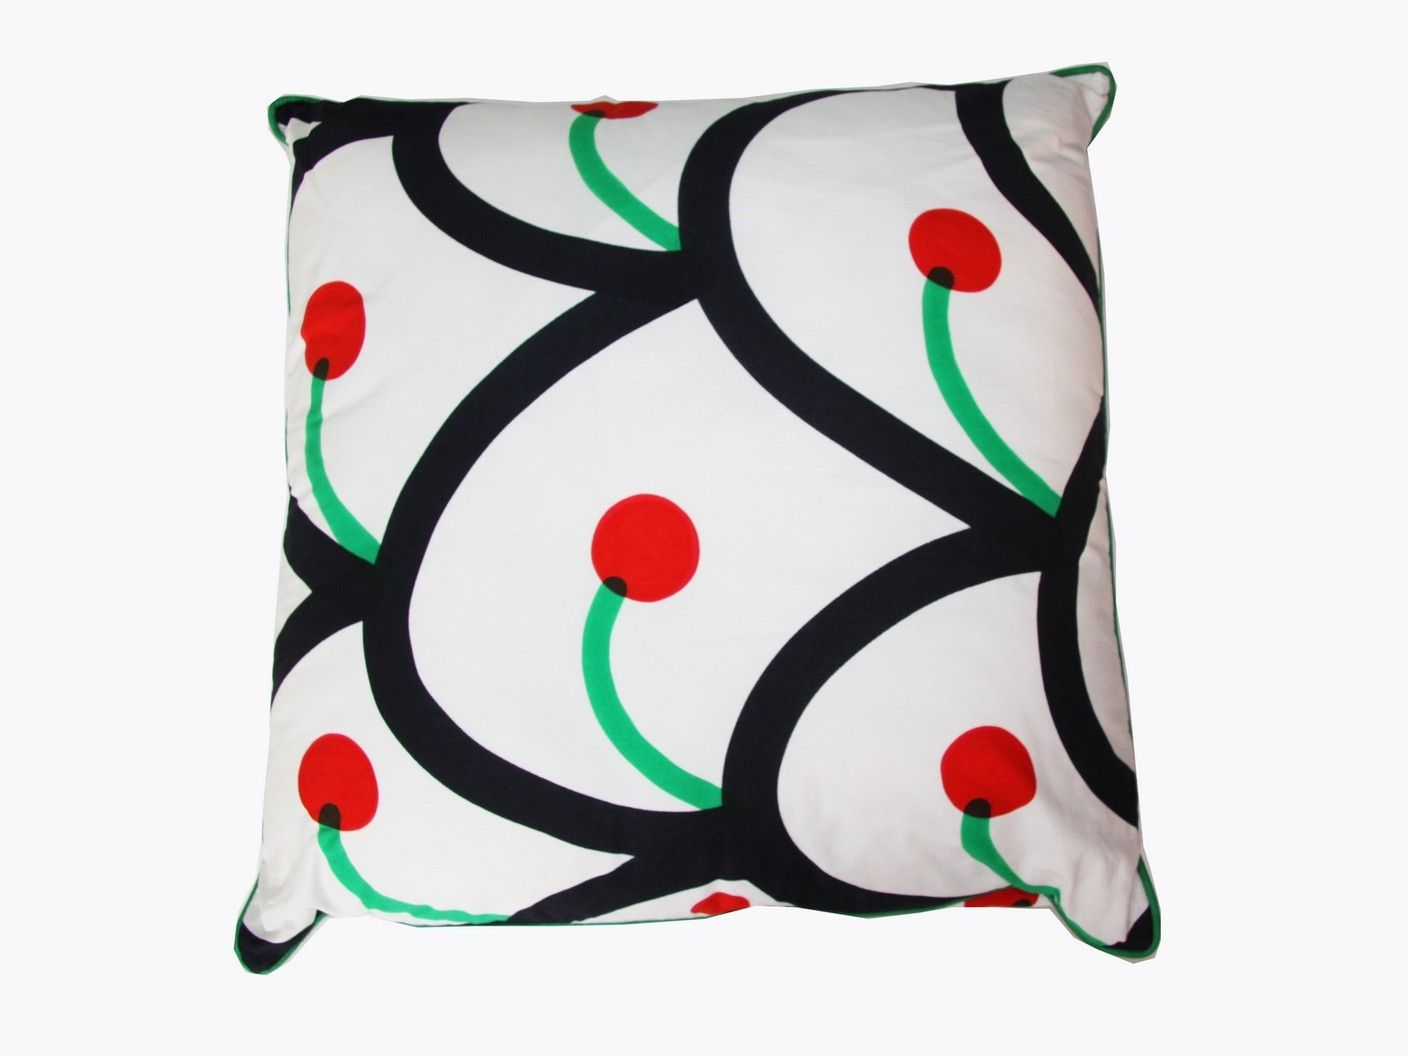 pillows ciliegie rosso cherry print design in shades of black